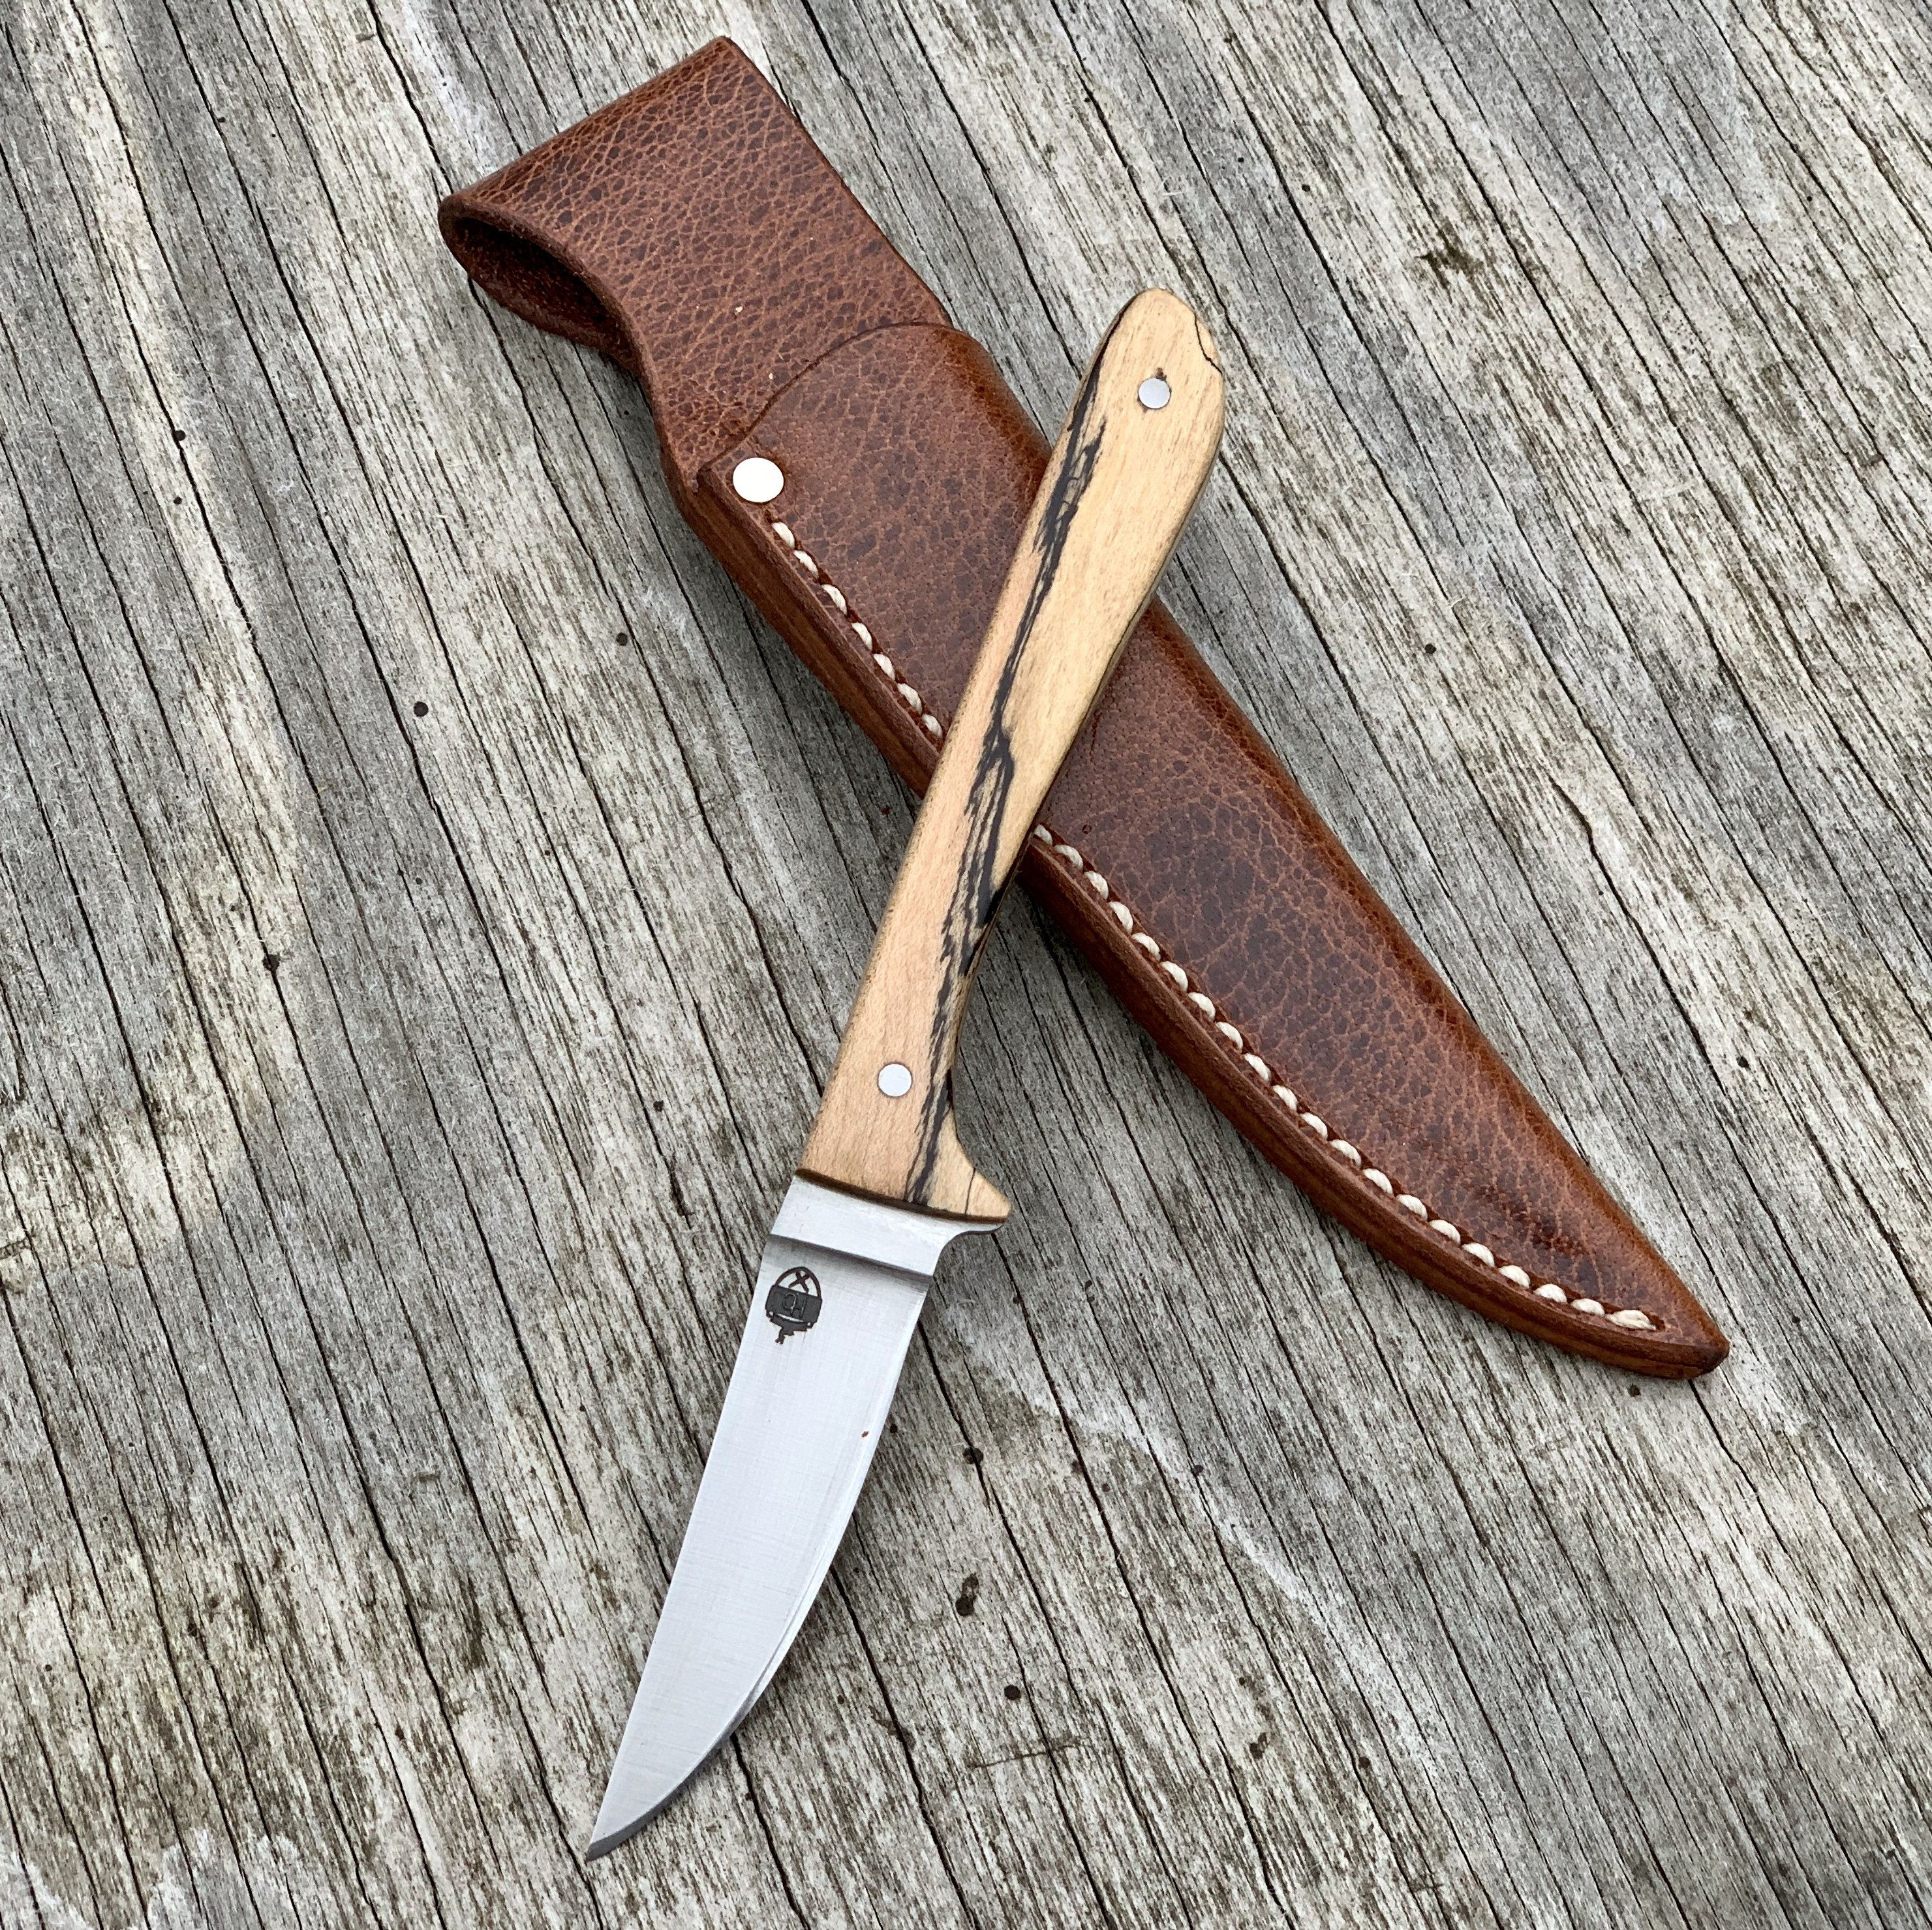 Hunting Knife Full Tang With 1095 High Carbon Steel Blade Stabilized Spalted Maple Handle And Custom Amish Made Leather Sheath By Heirloo